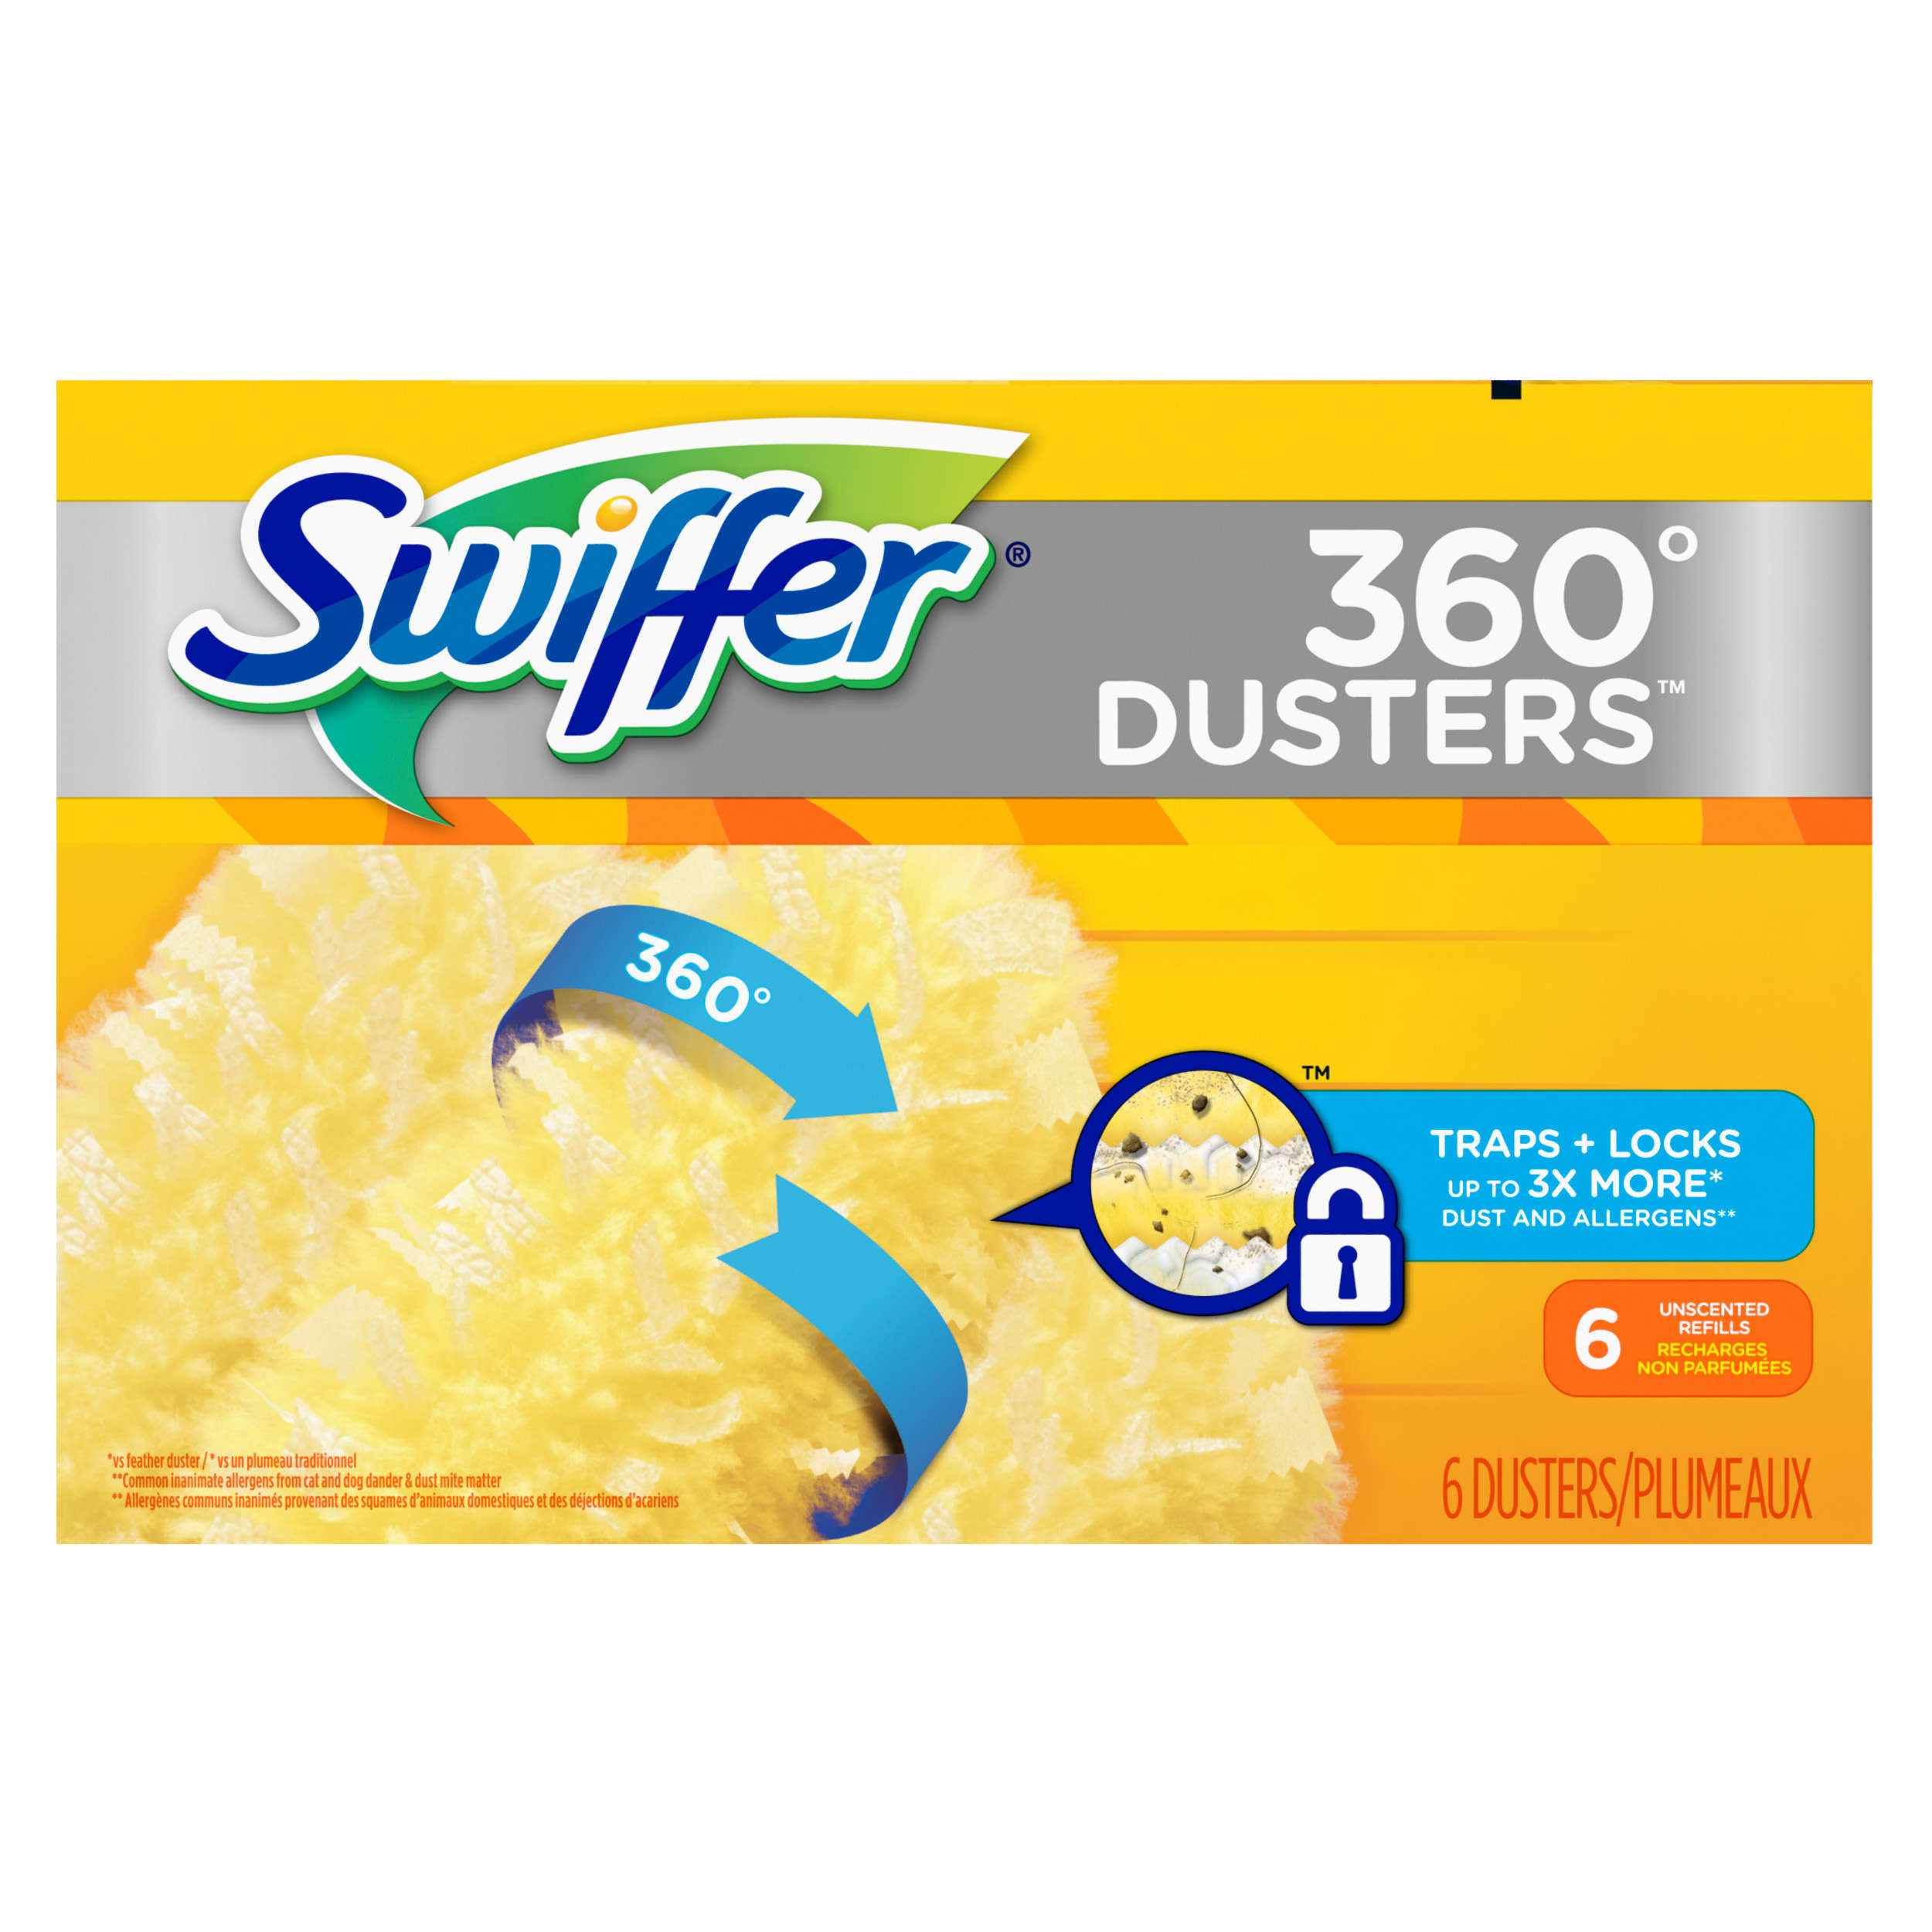 Swiffer 360 Dusters Refills 6 Count